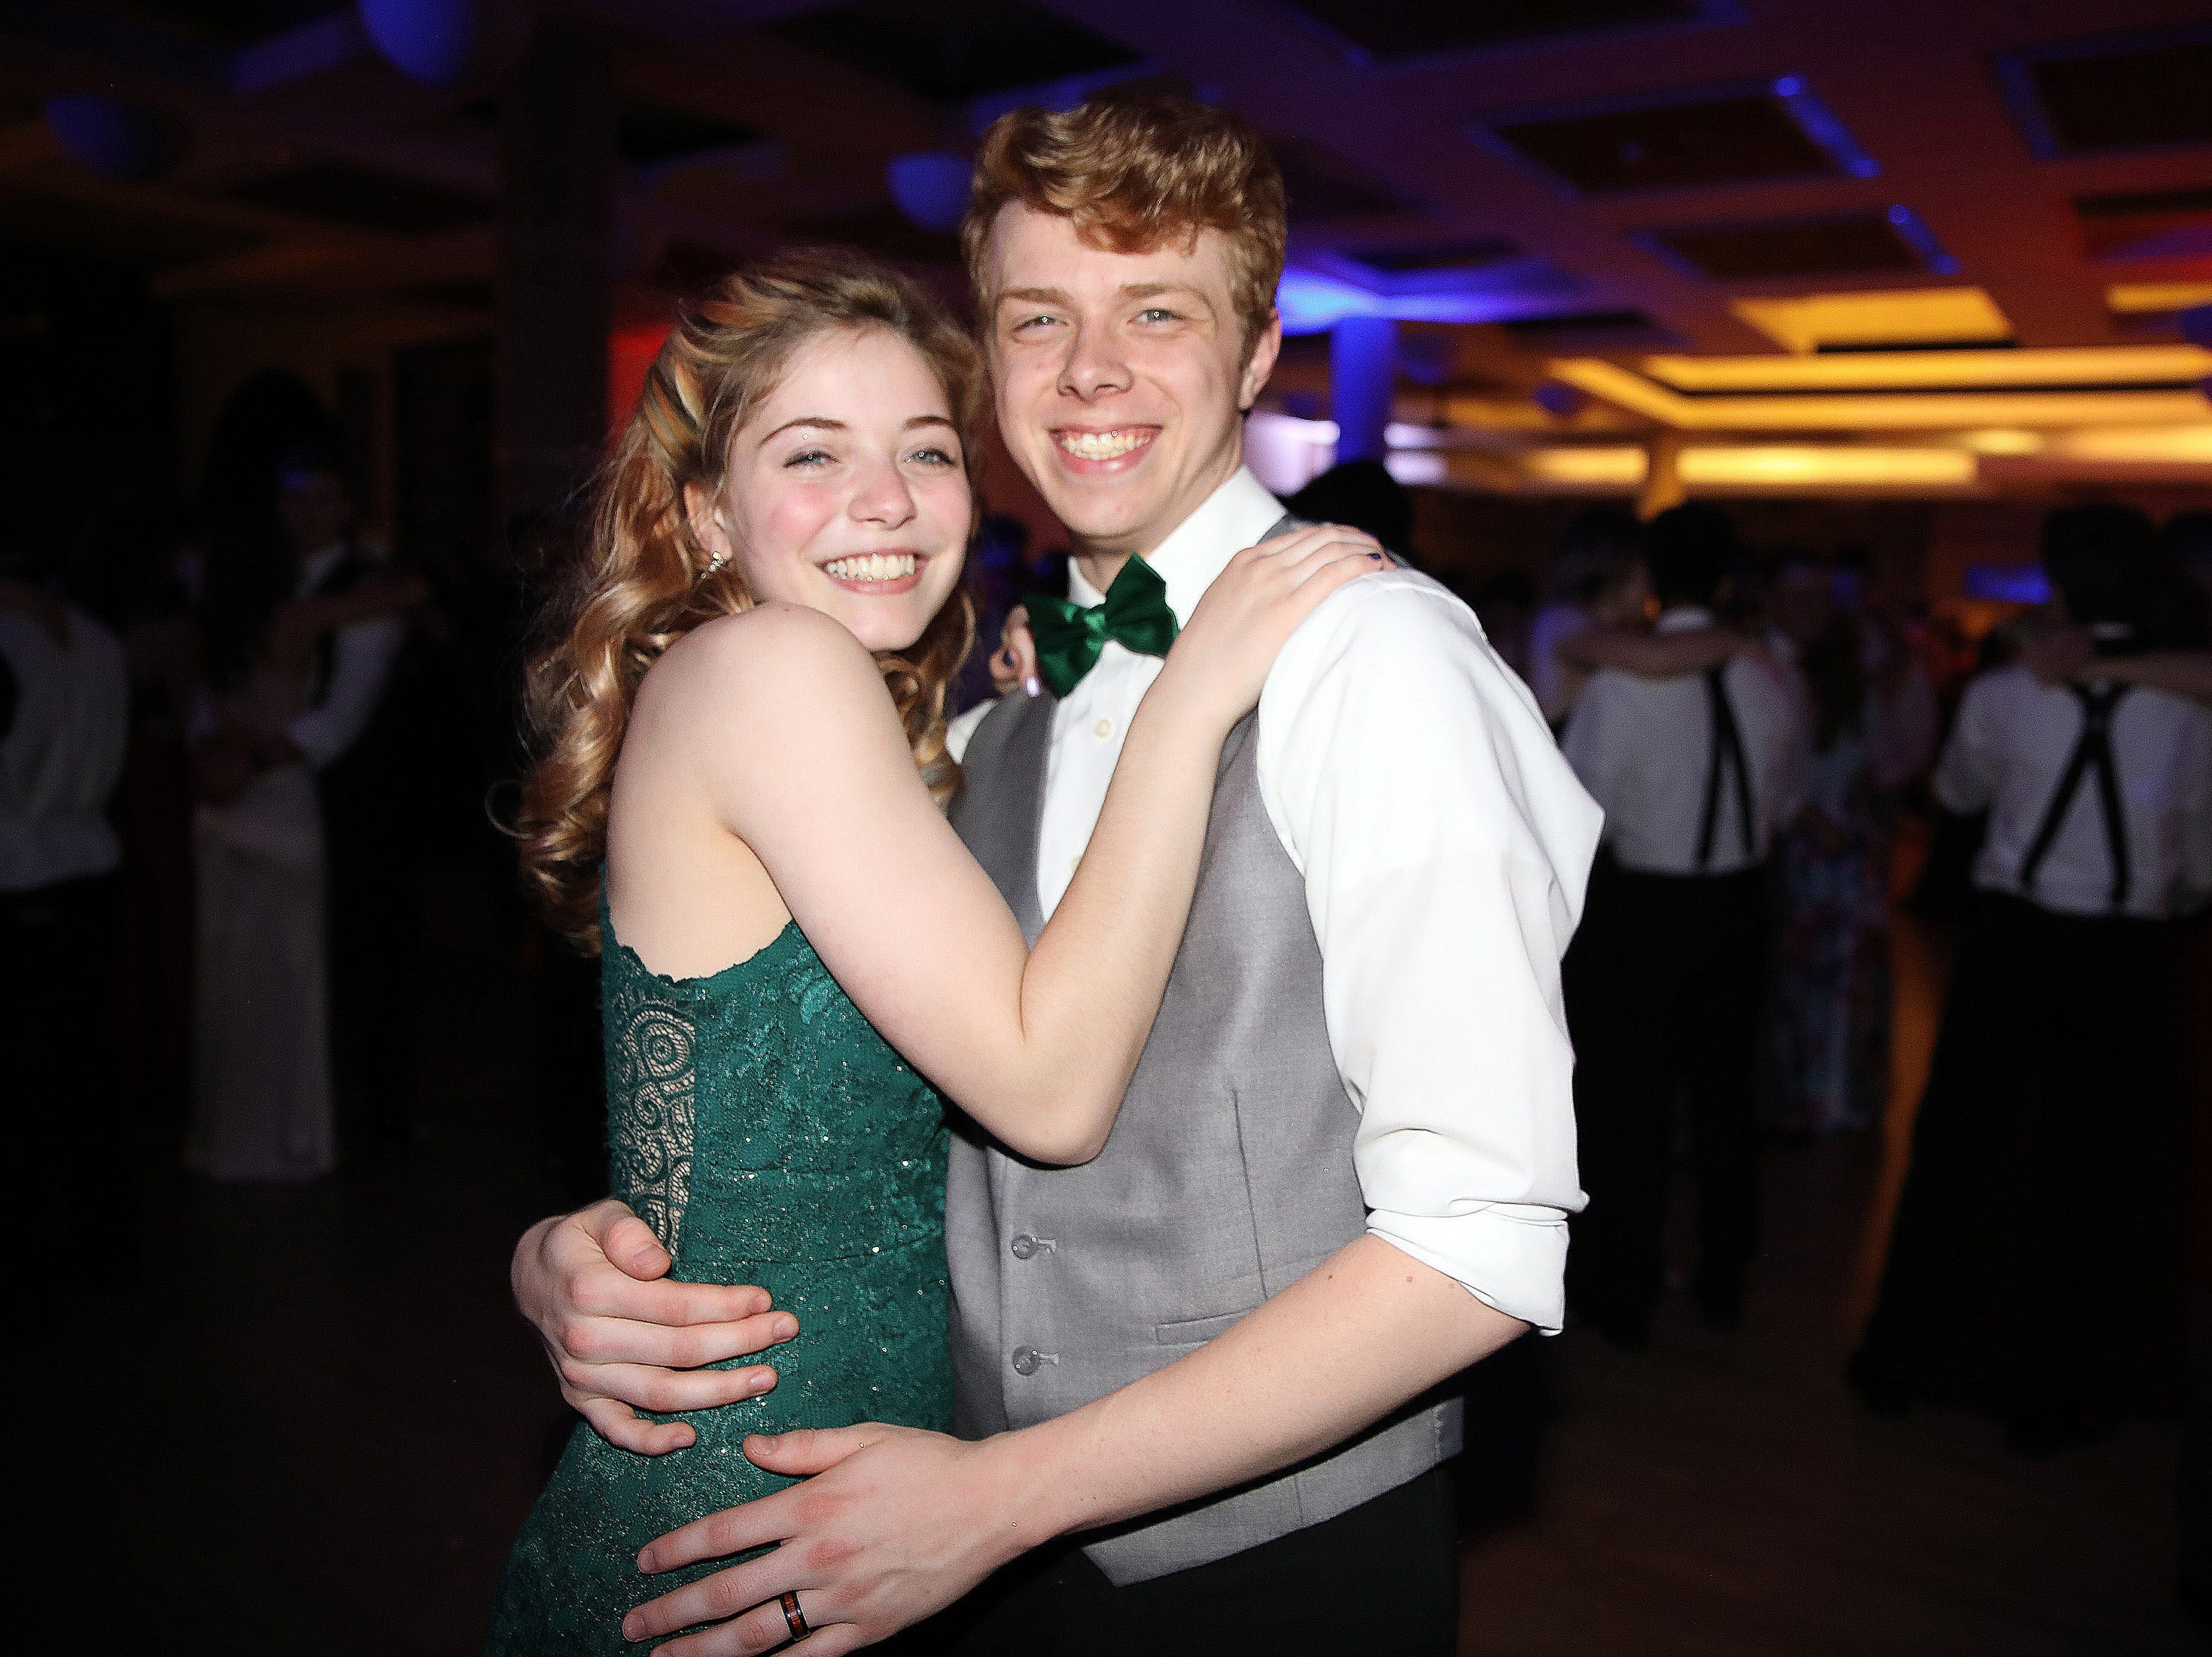 Junior Mahayla Claiser and graduate Andrew Van Zante enjoy a slow dance during the circus-themed Urbandale High School Junior/Senior Prom Spectacular at the State Historical Building in Des Moines on Saturday, April 11, 2019.  The post-prom event is held at school right after the dance from 11 p.m. to 4:30 a.m. with food, prizes, a hypnotist, inflatables, and casino games.